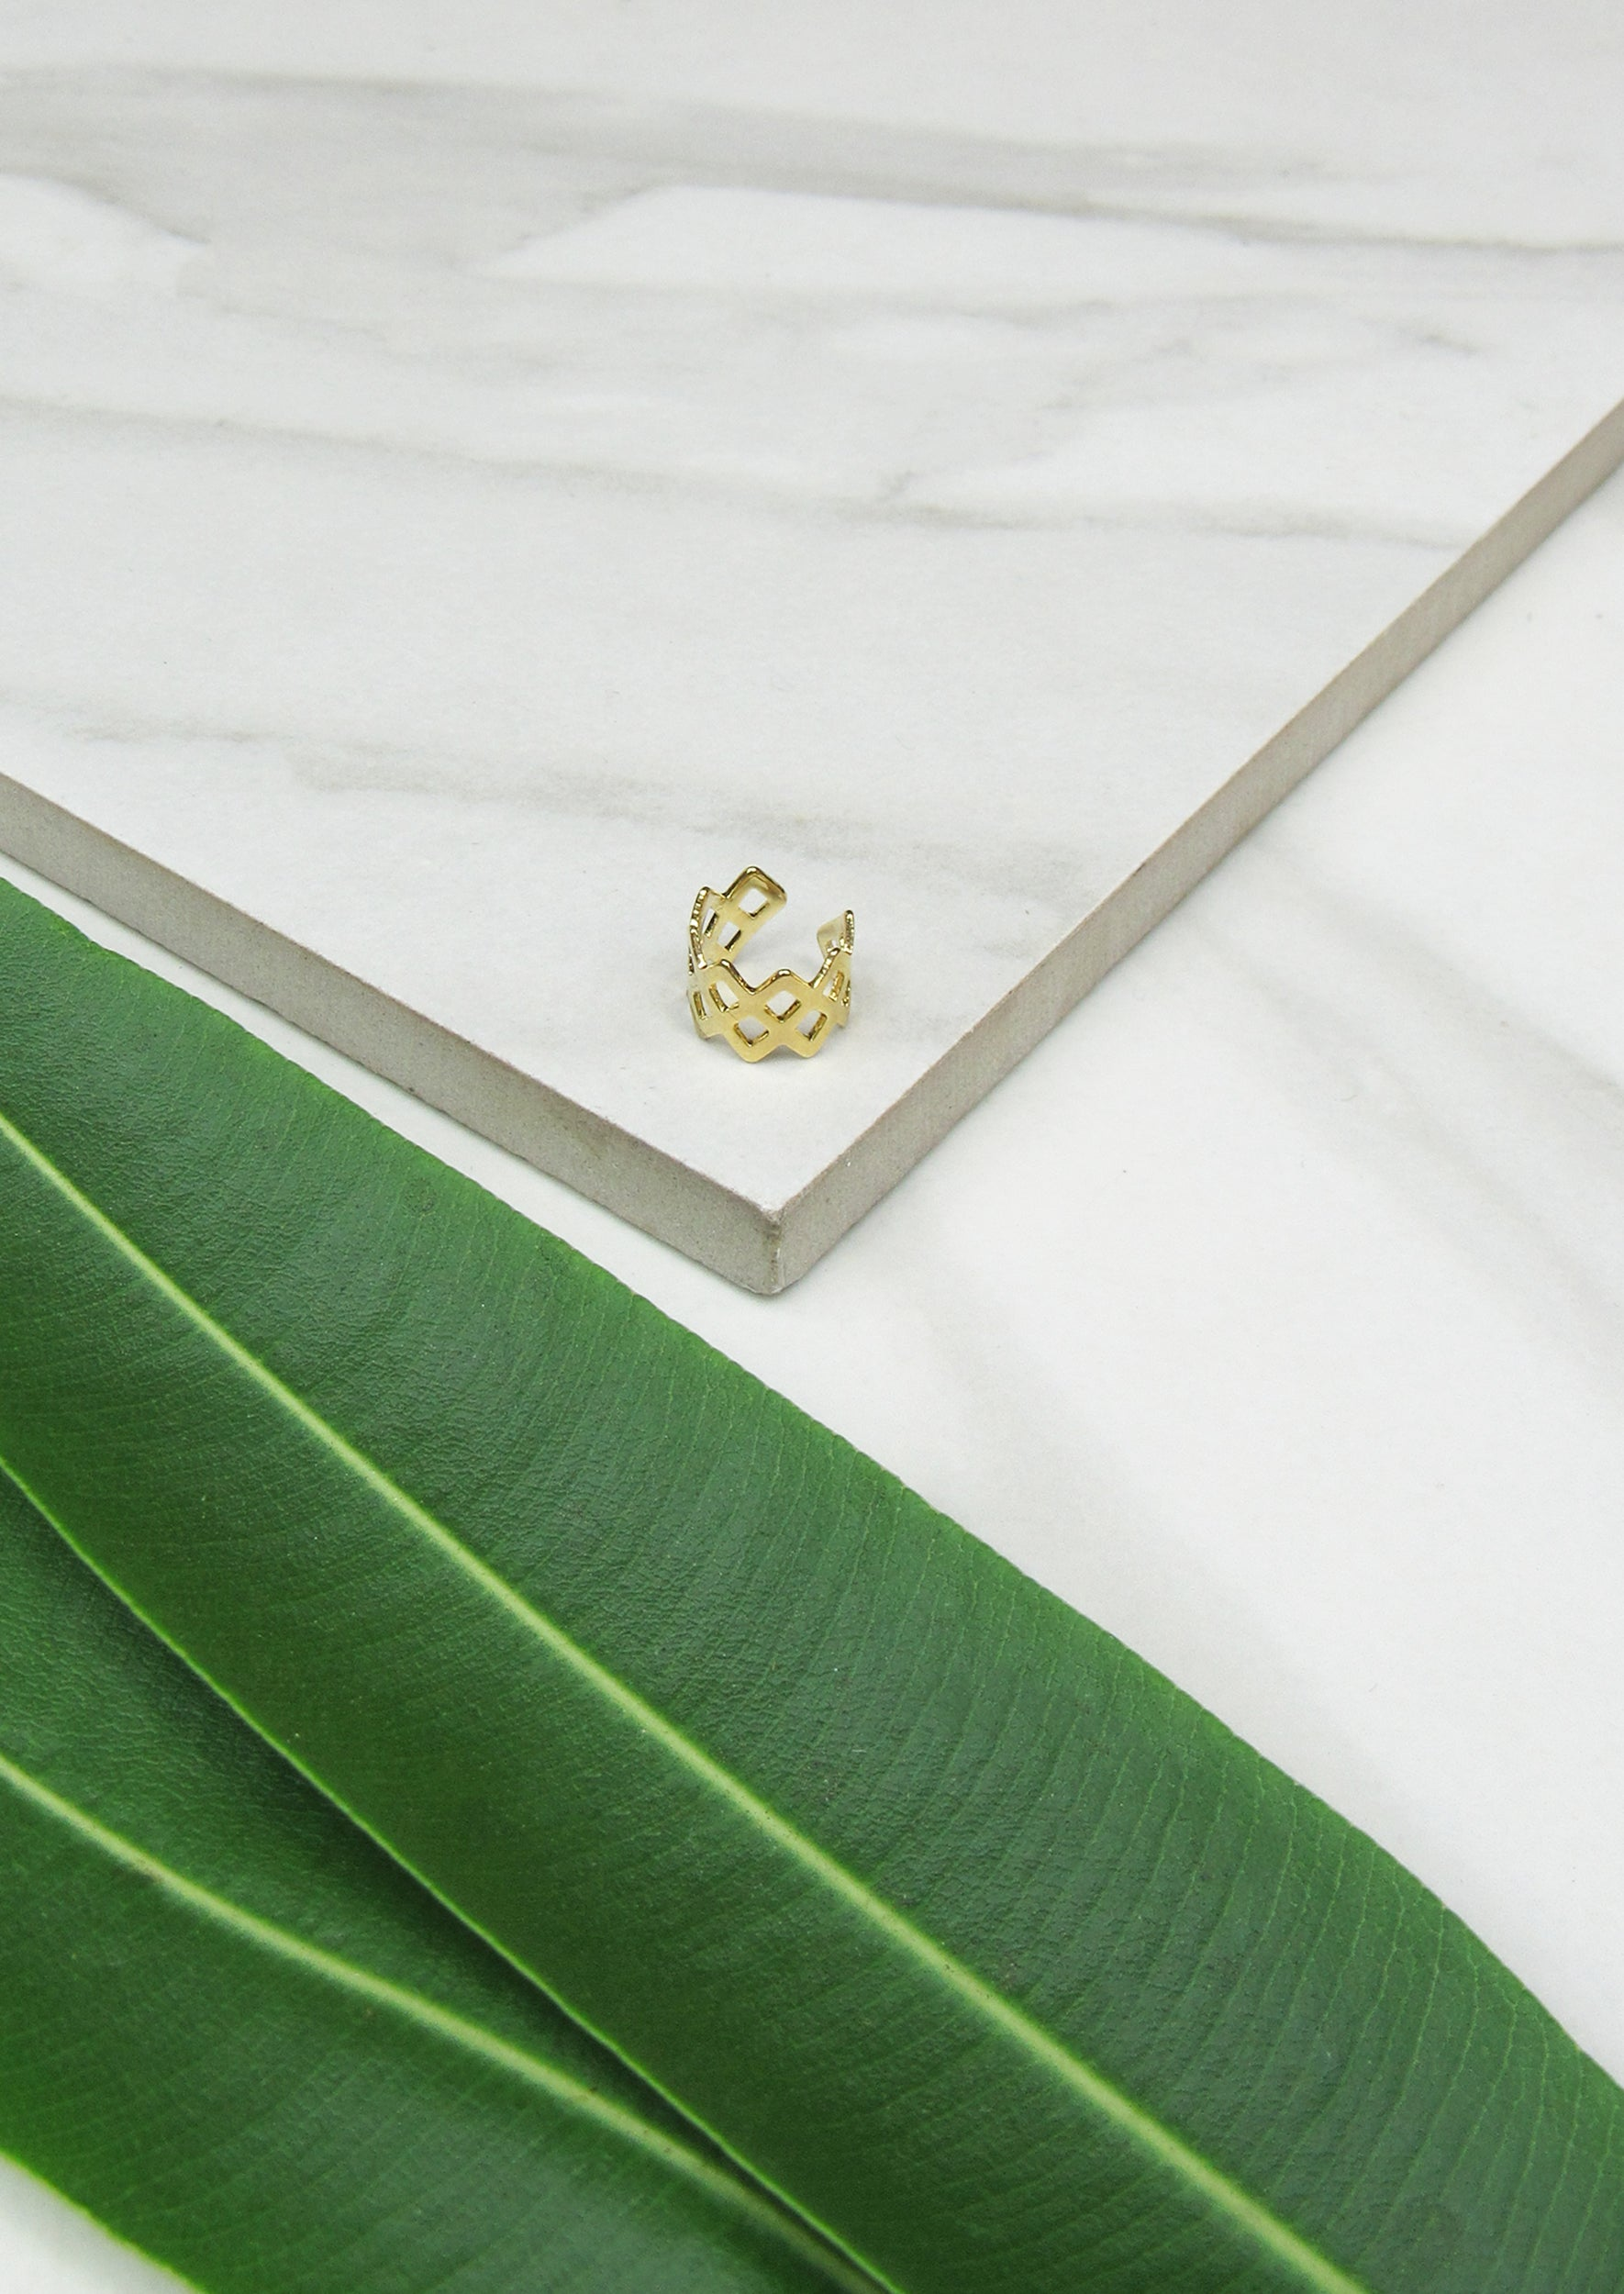 Jules Smith 14K Gold Plated Ear Cuff